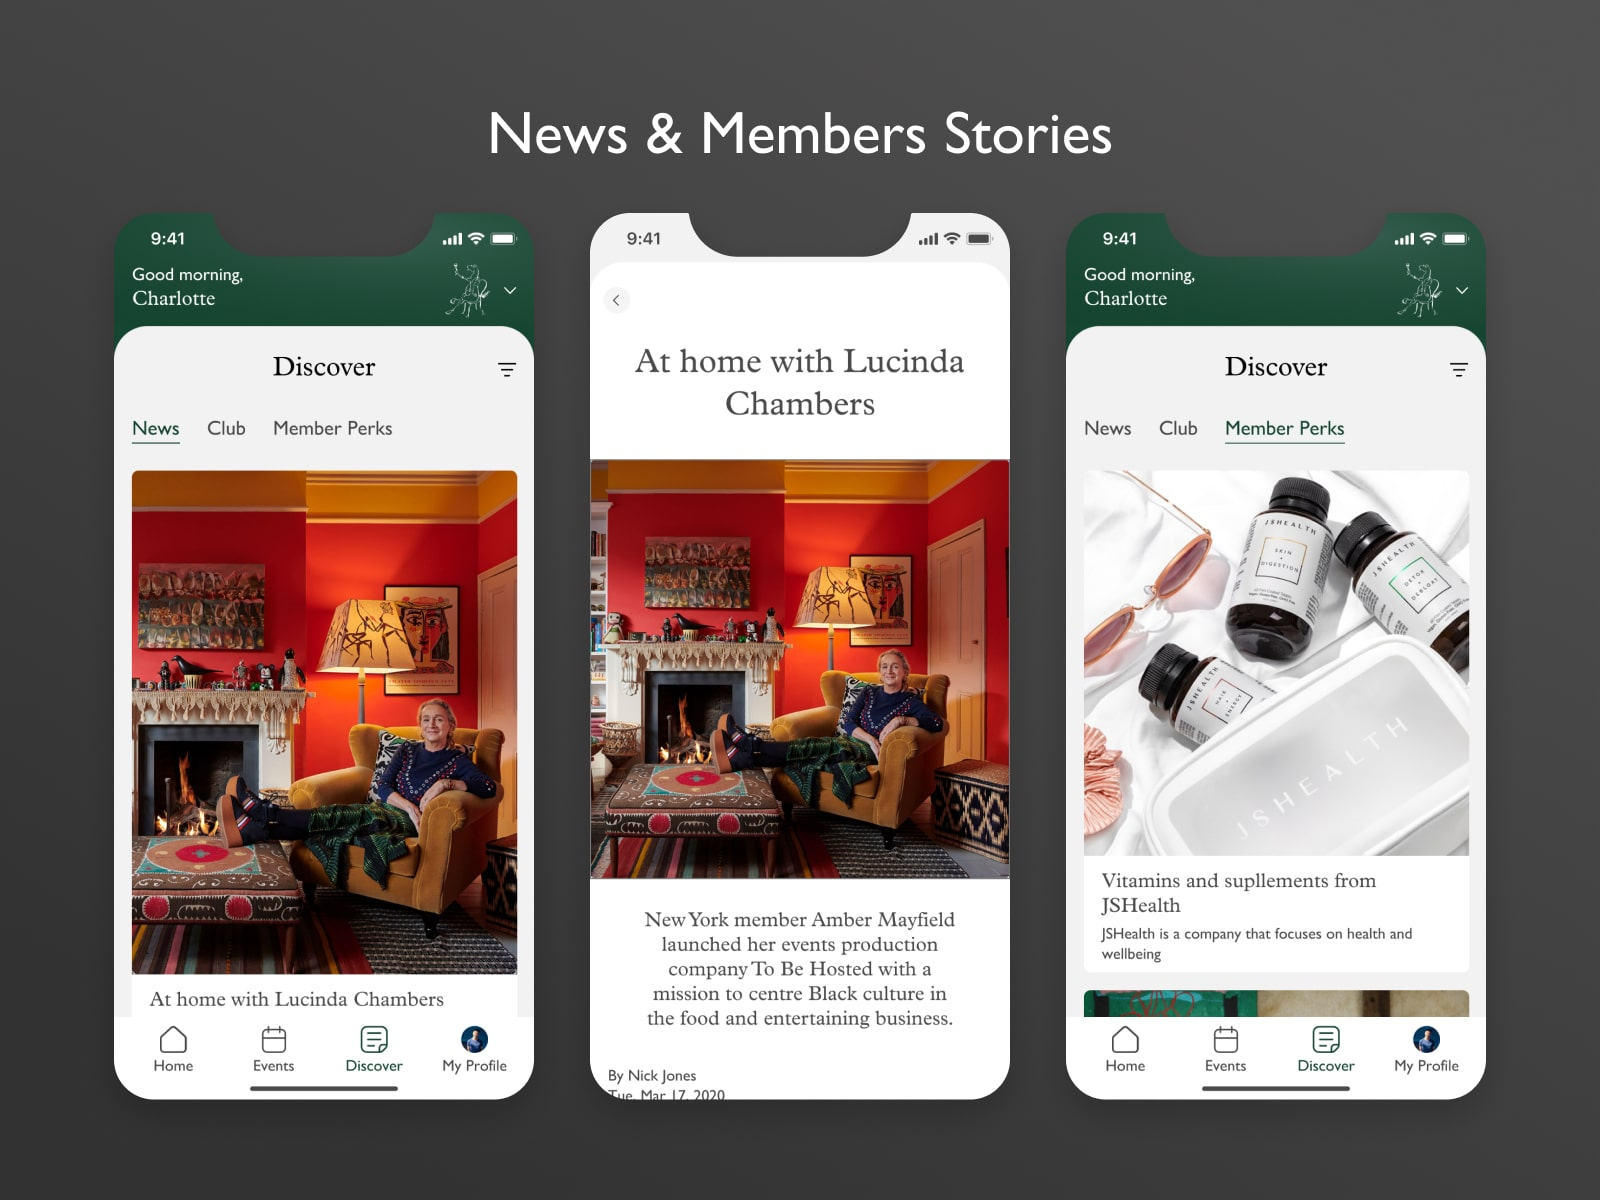 neds club news and stories